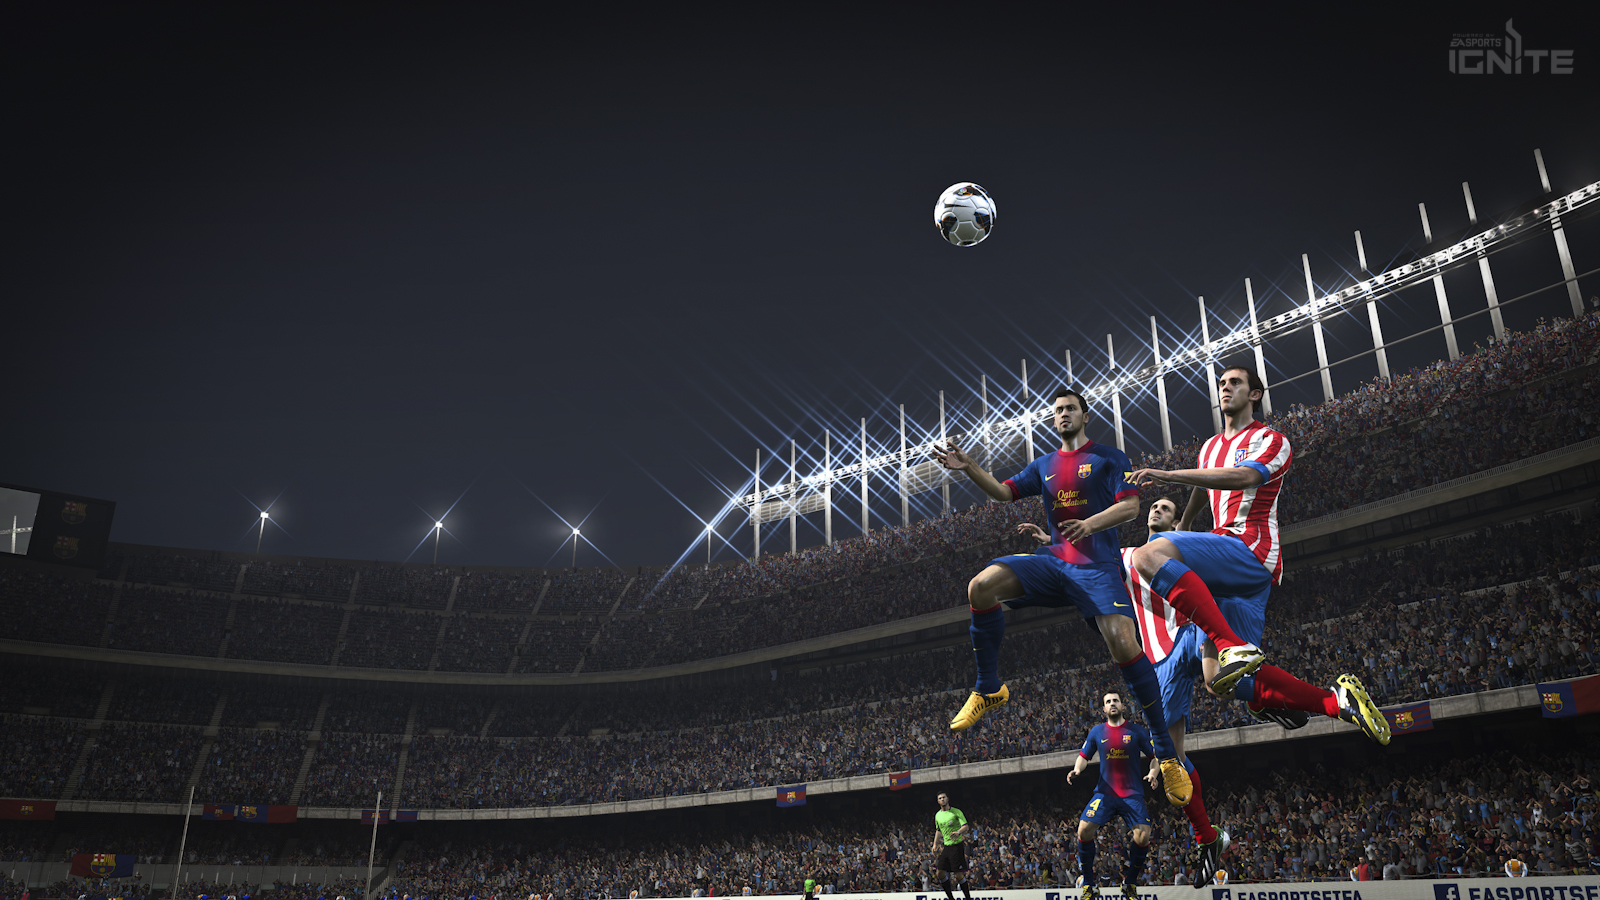 Barca heading the ball on Next Gen